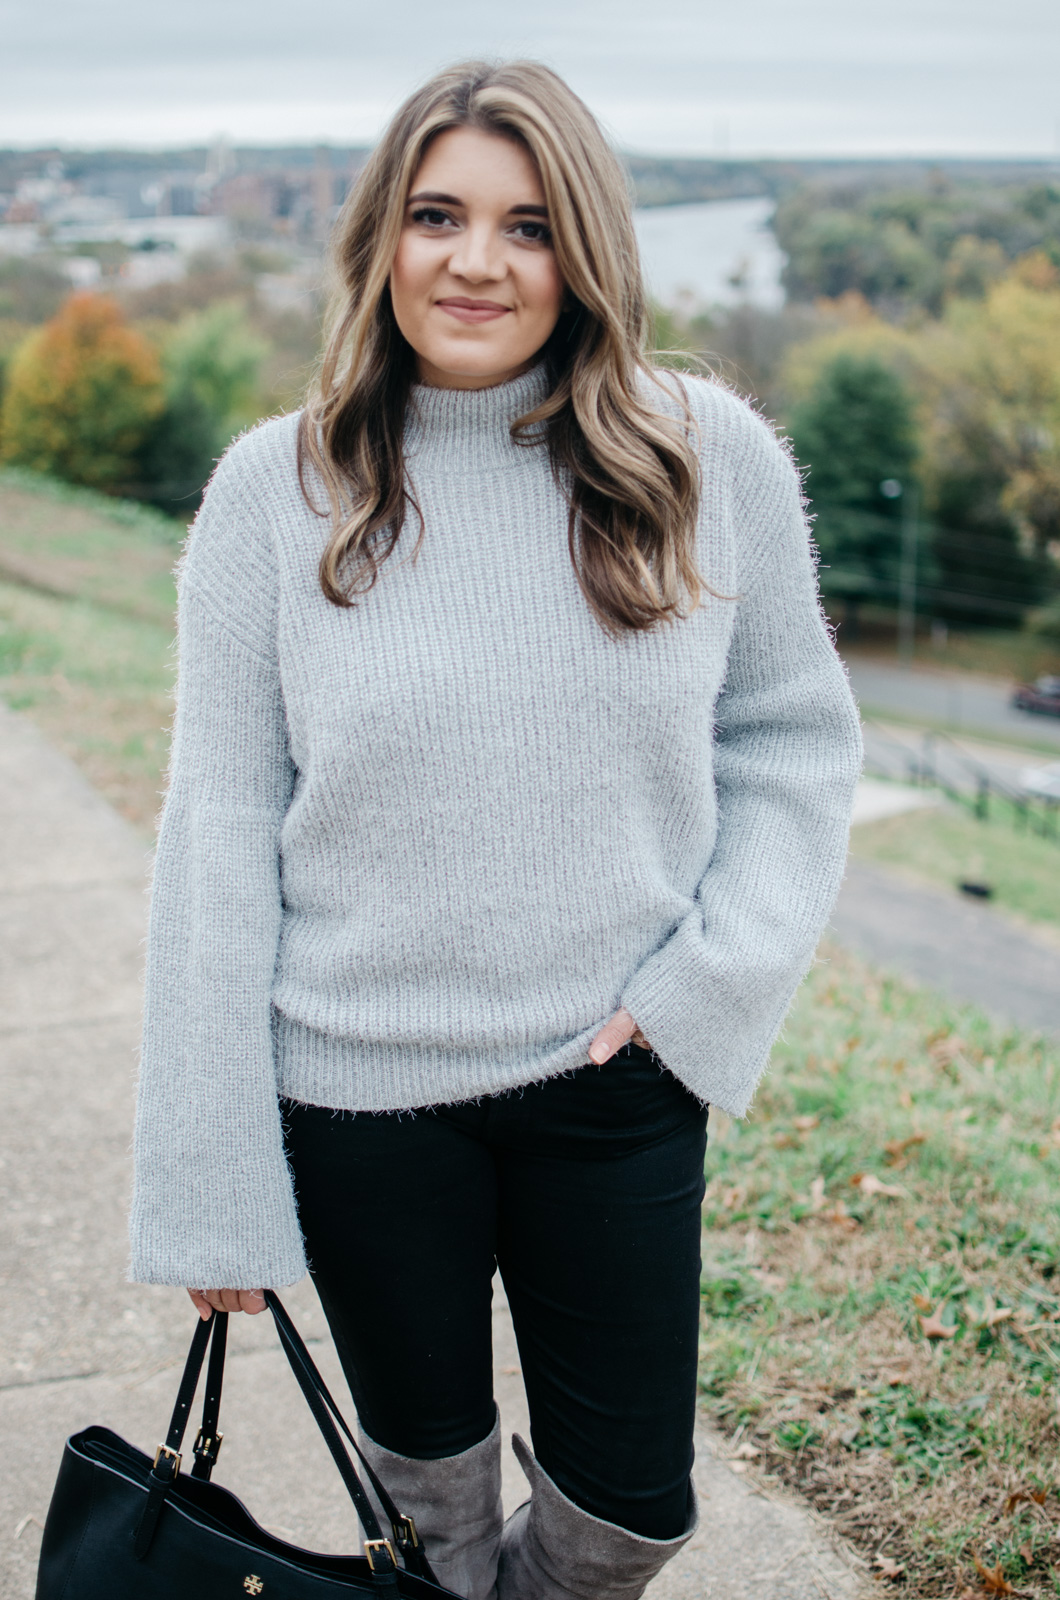 bell sleeve outfit idea - how wear a bell sleeve sweater | Get more Winter outfit ideas at bylaurenm.com!